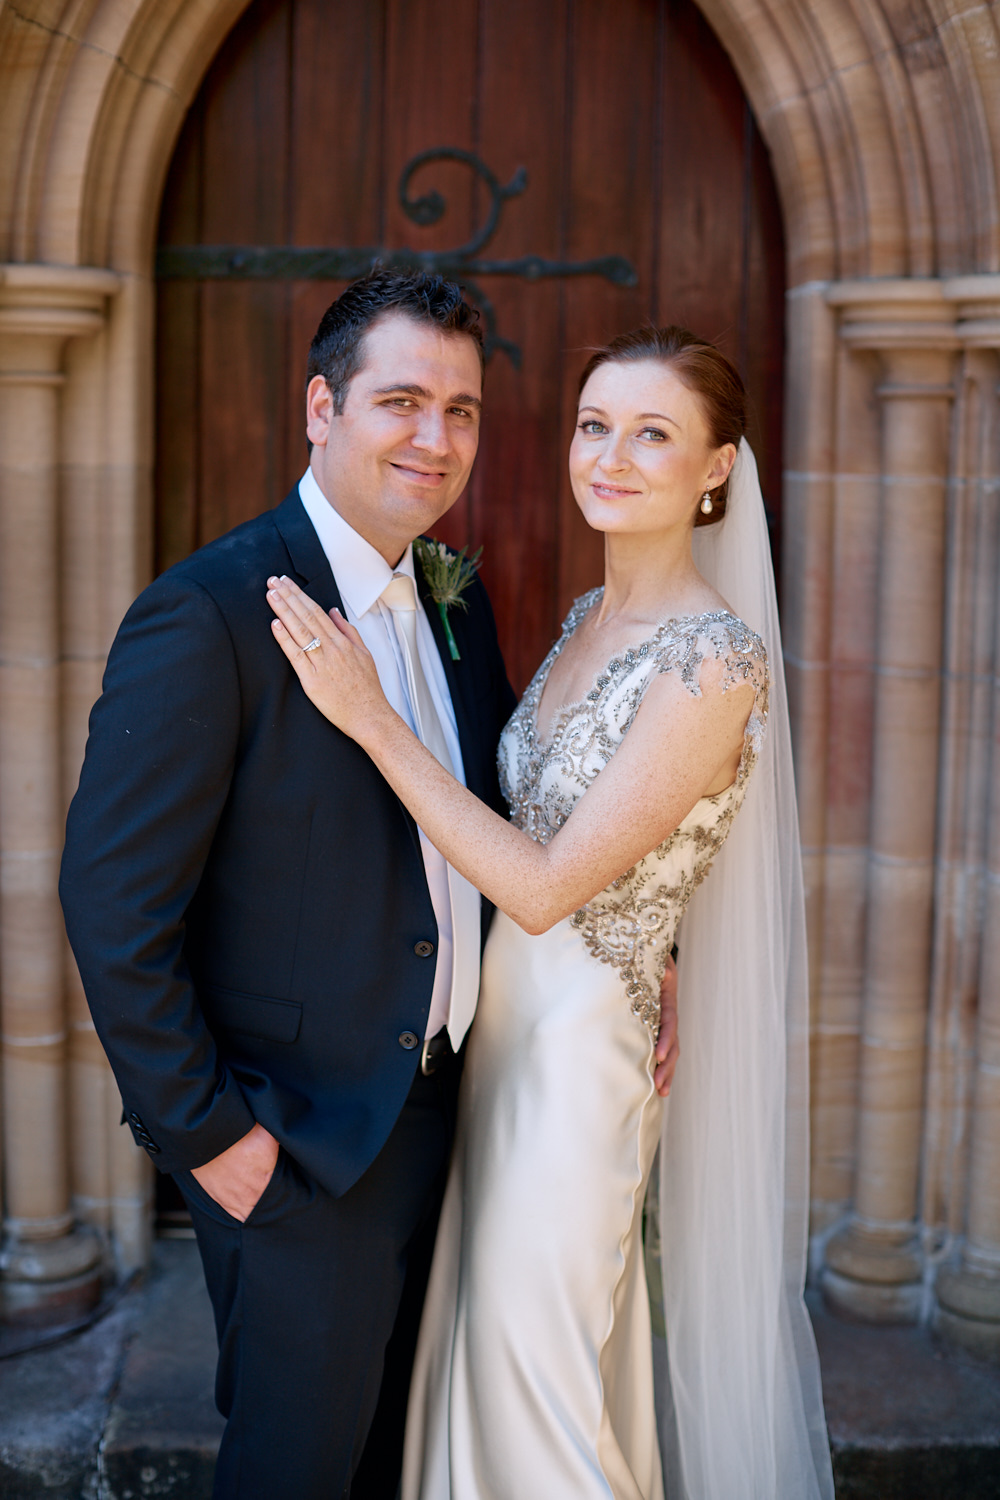 Portrait of bride and groom in front of wooden door at St Marks Anglican Church, Darling Point